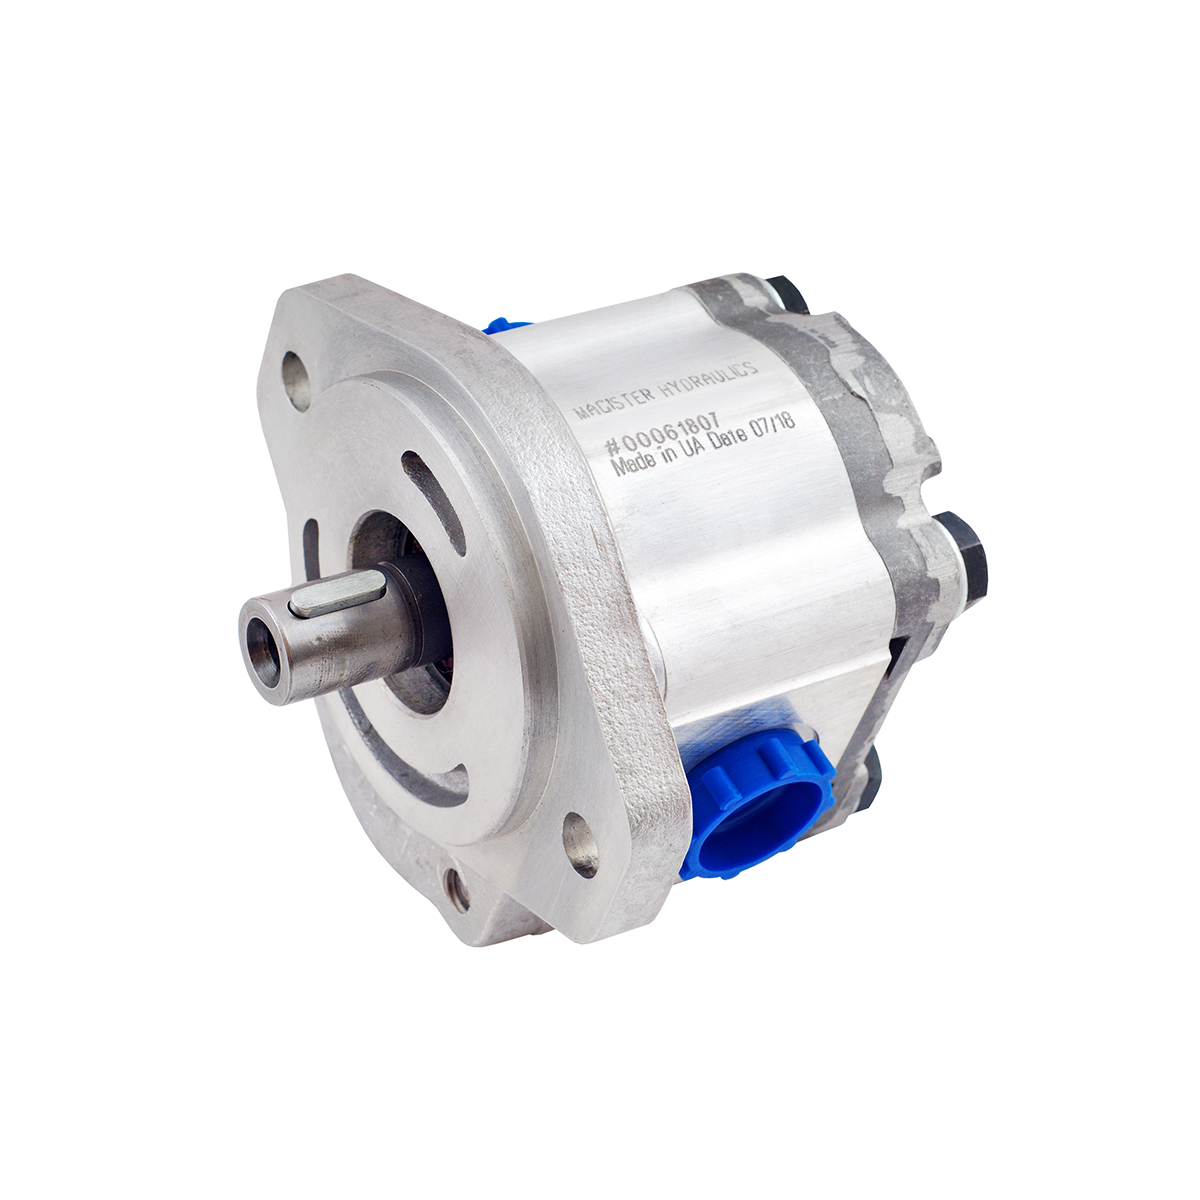 1.16 CID hydraulic gear pump, 7/8 keyed shaft counter-clockwise gear pump | Magister Hydraulics